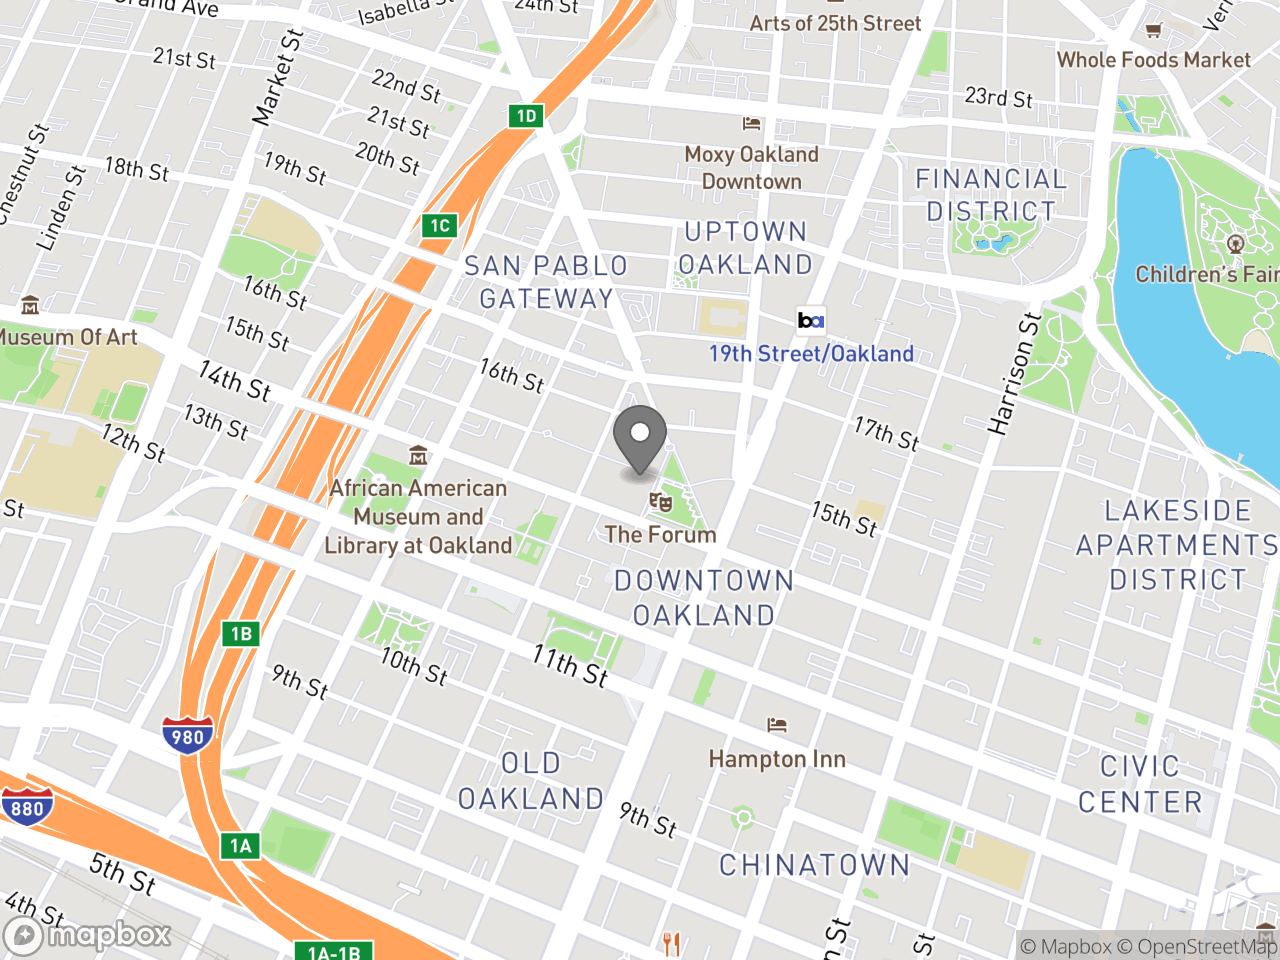 Map location for Bicyclist and Pedestrian Advisory Commission (BPAC) Meeting, April 18, 2019, located at 1 Frank H Ogawa Plaza in Oakland, CA 94612